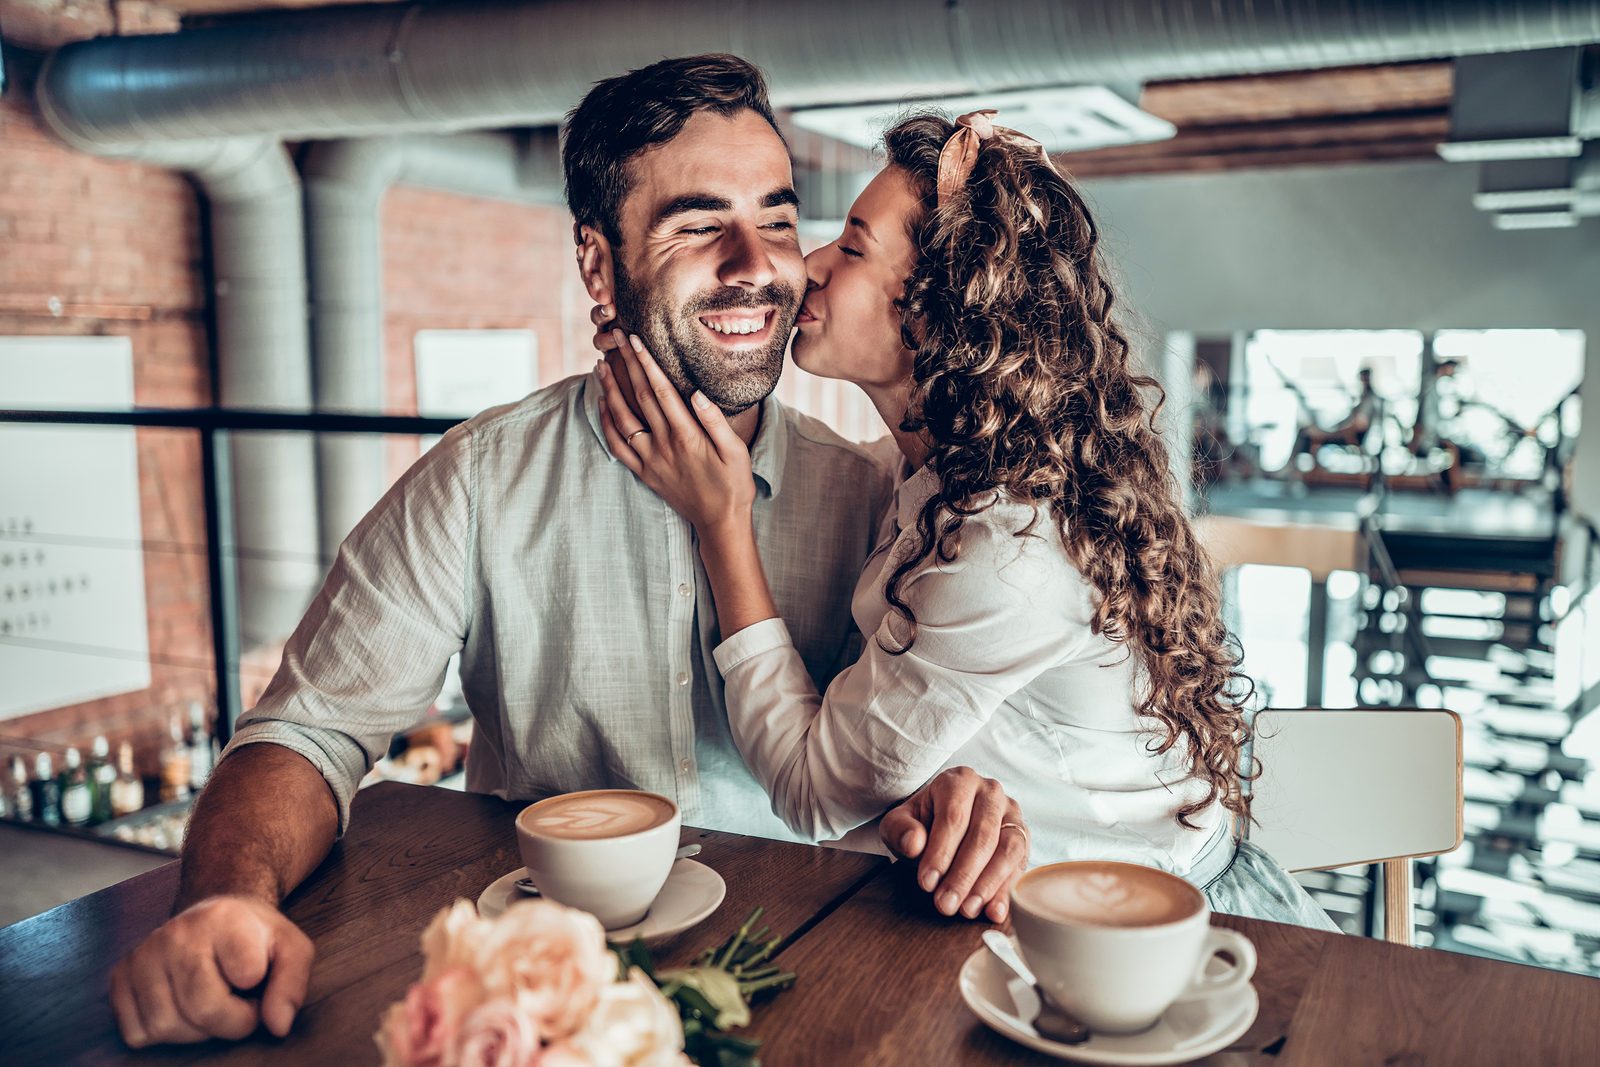 best marriage podcasts - image of man and woman sitting together in a cafe, wife is kissing the husband's cheek as he smiles